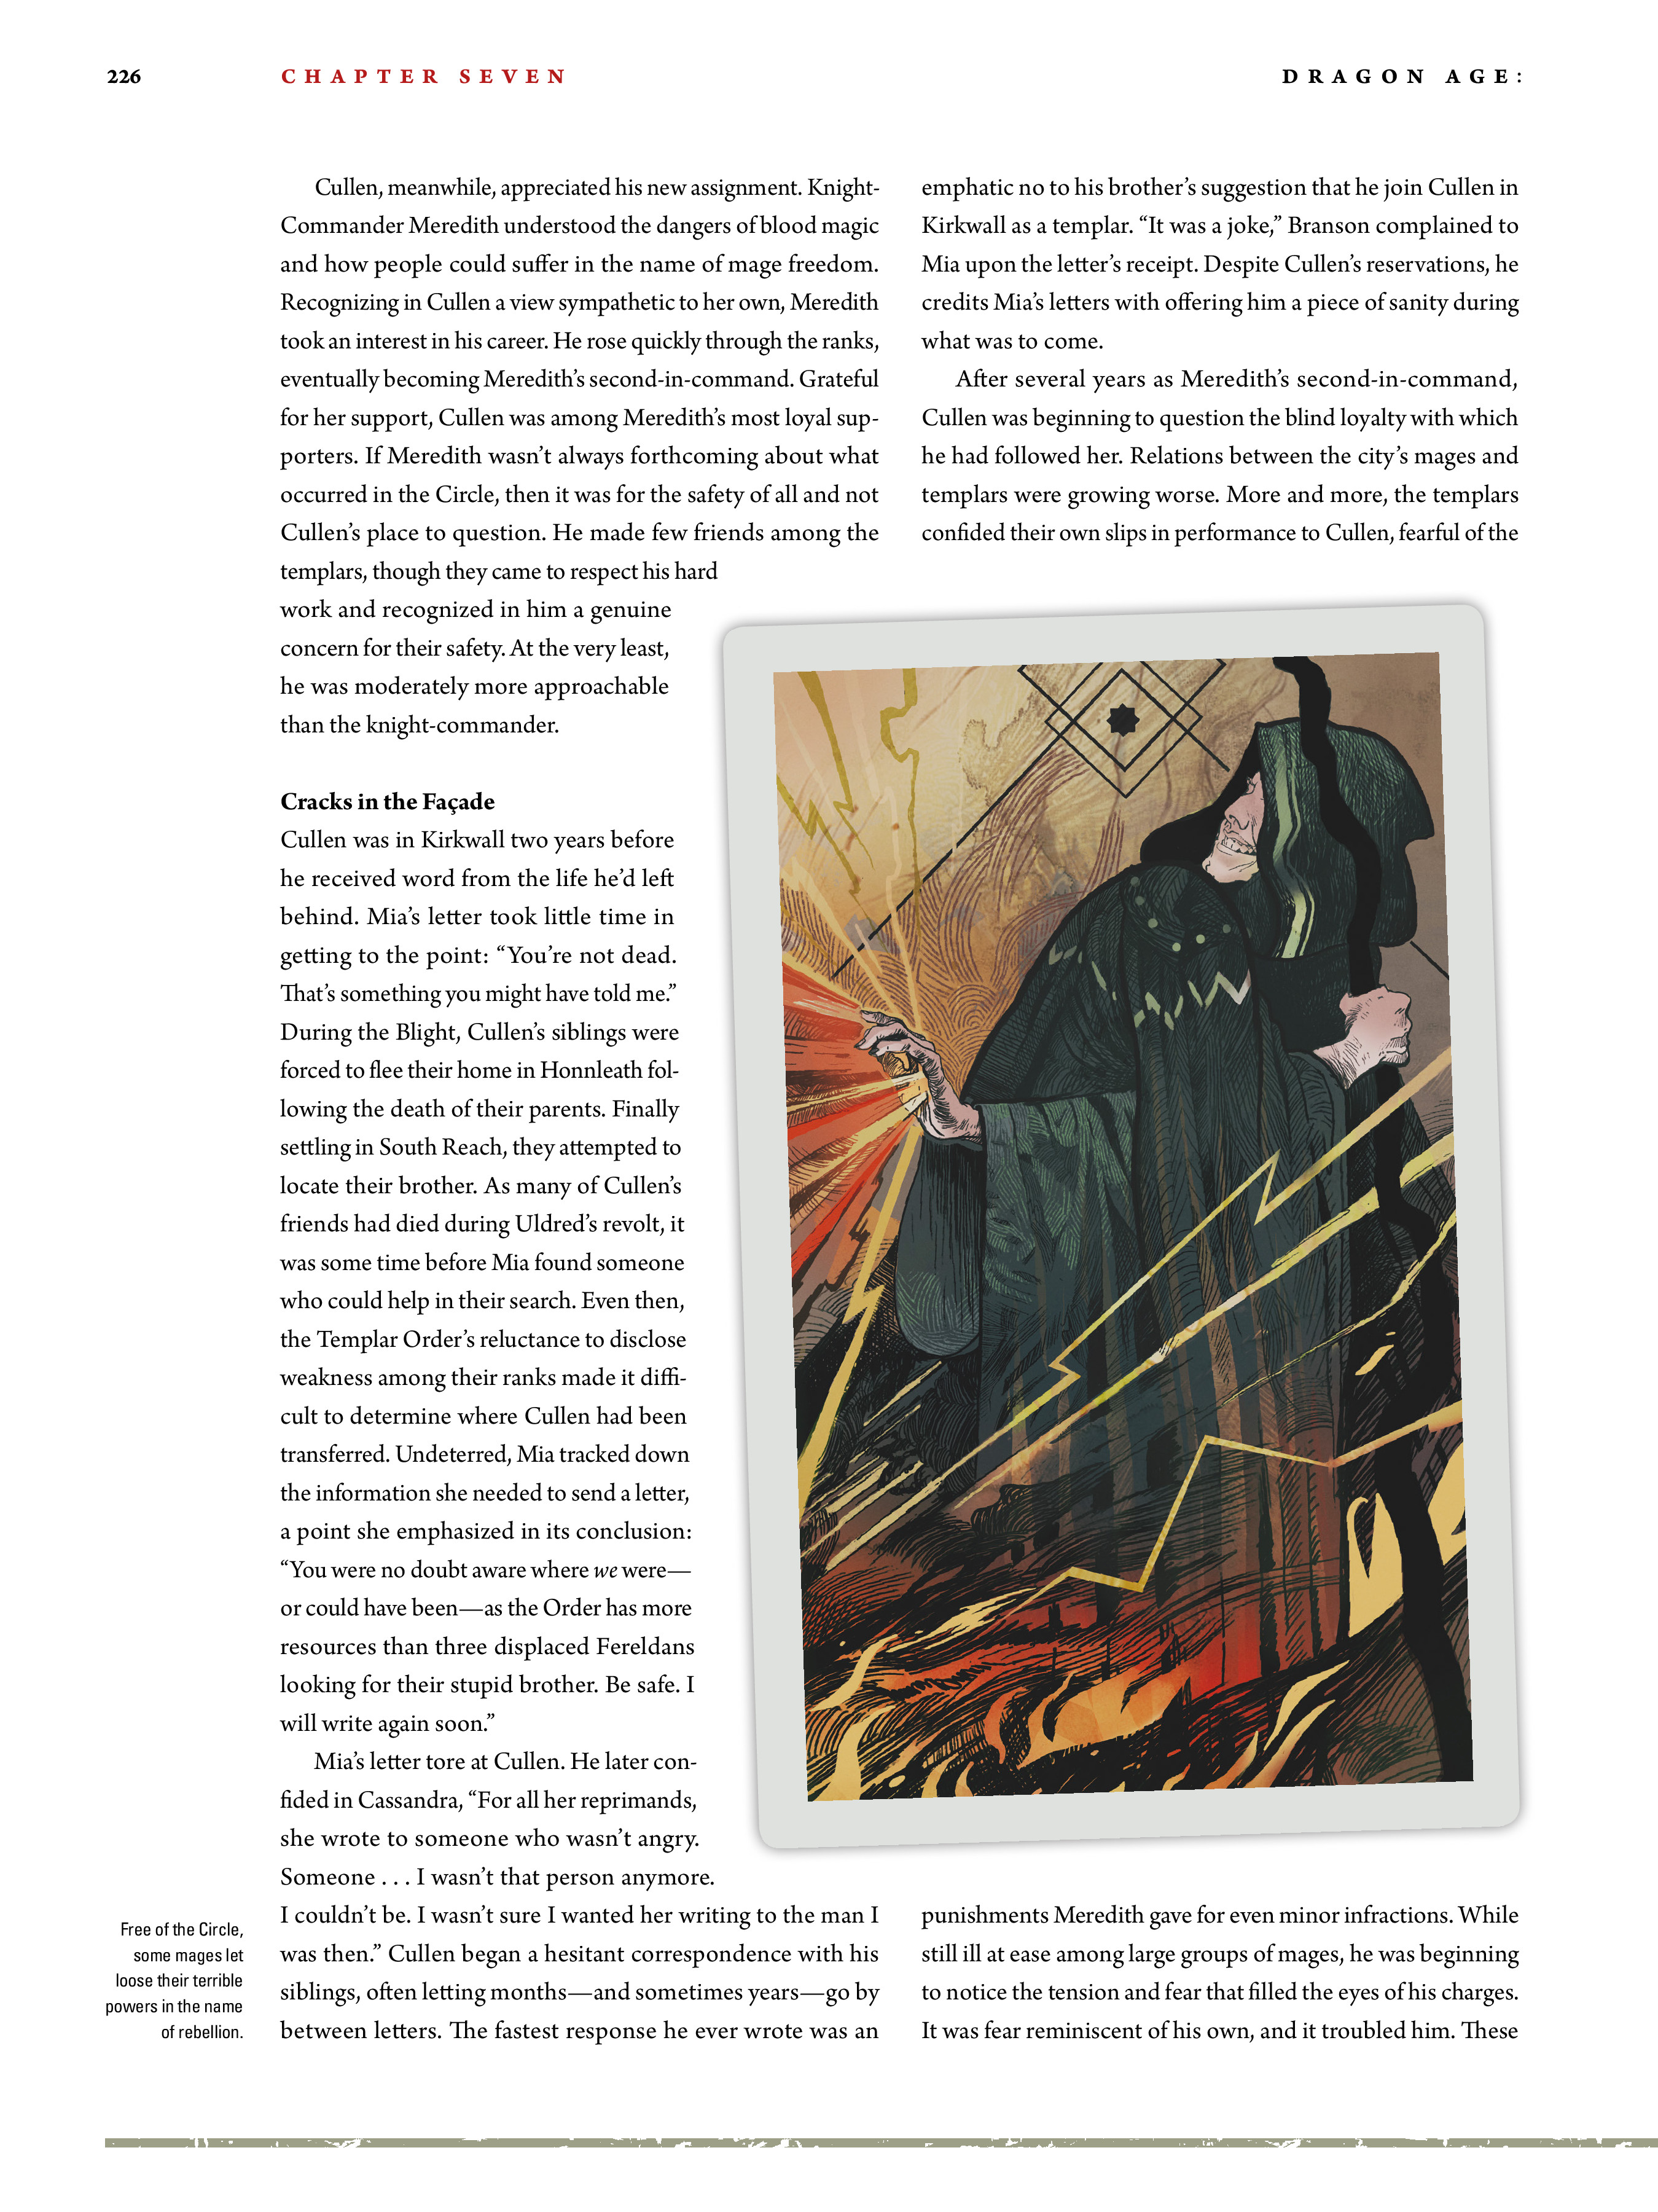 Read online Dragon Age: The World of Thedas comic -  Issue # TPB 2 - 221